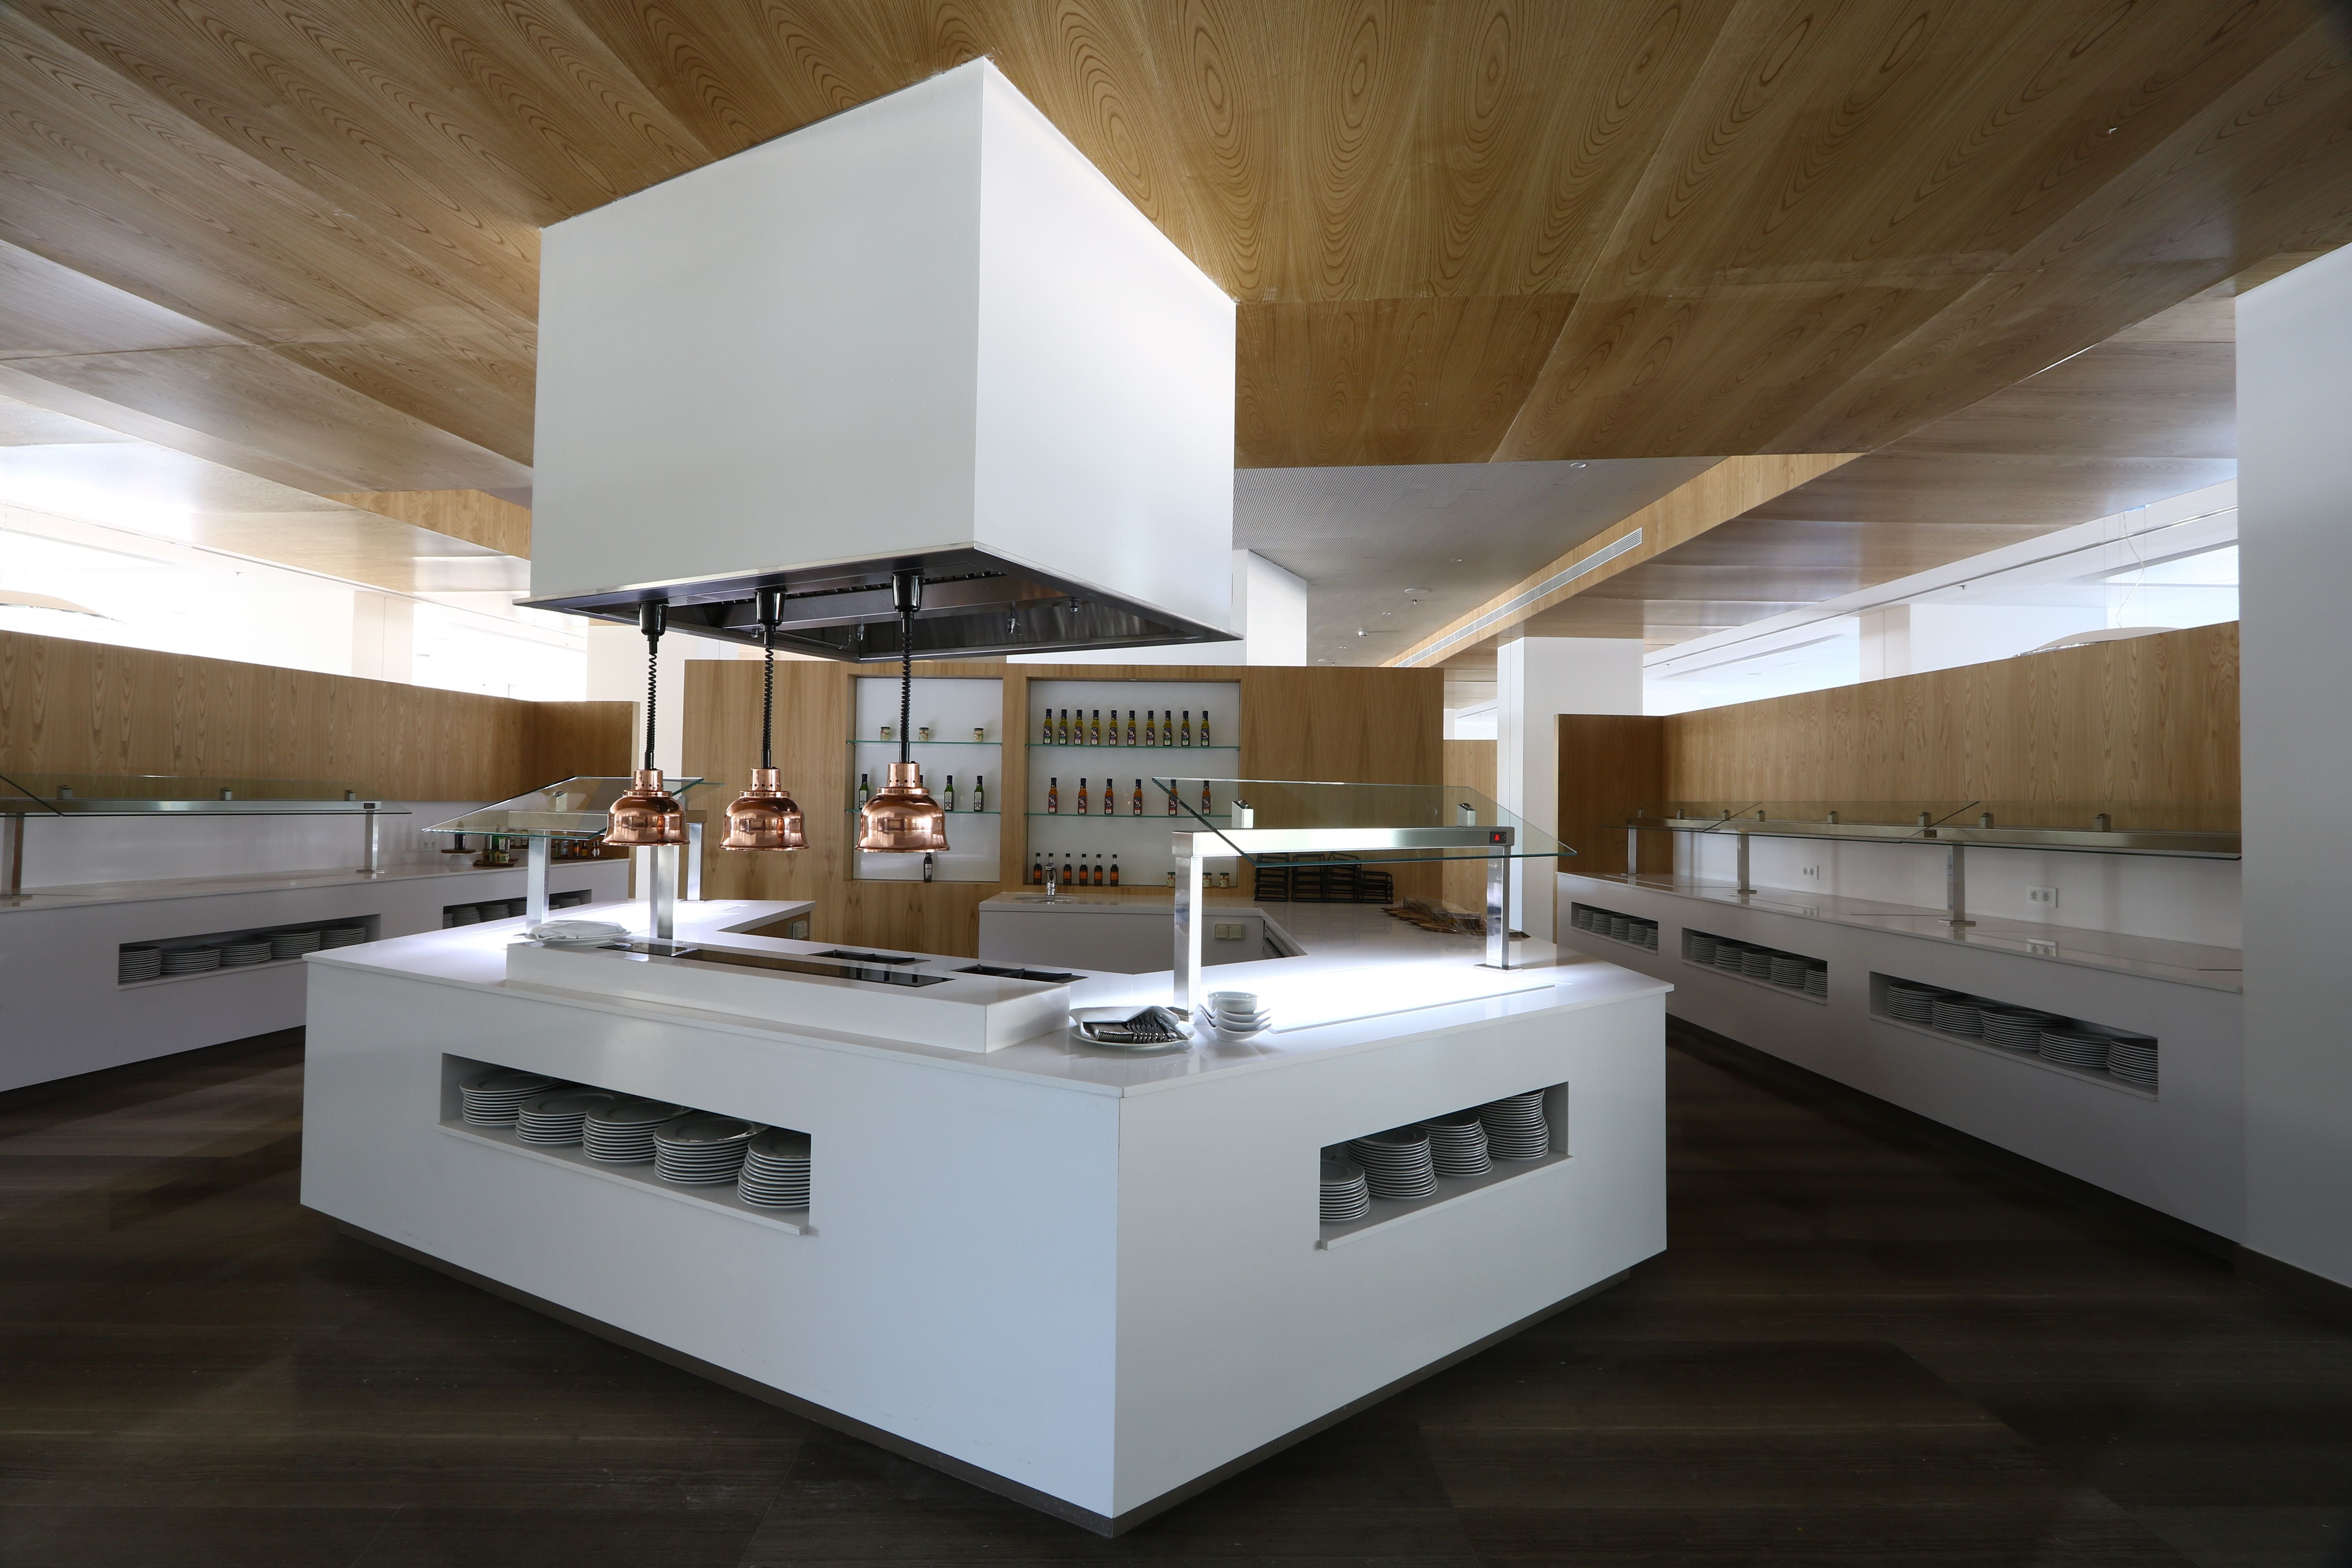 Silestone Blanco Zeus our Tops Top white reigns in the buffet